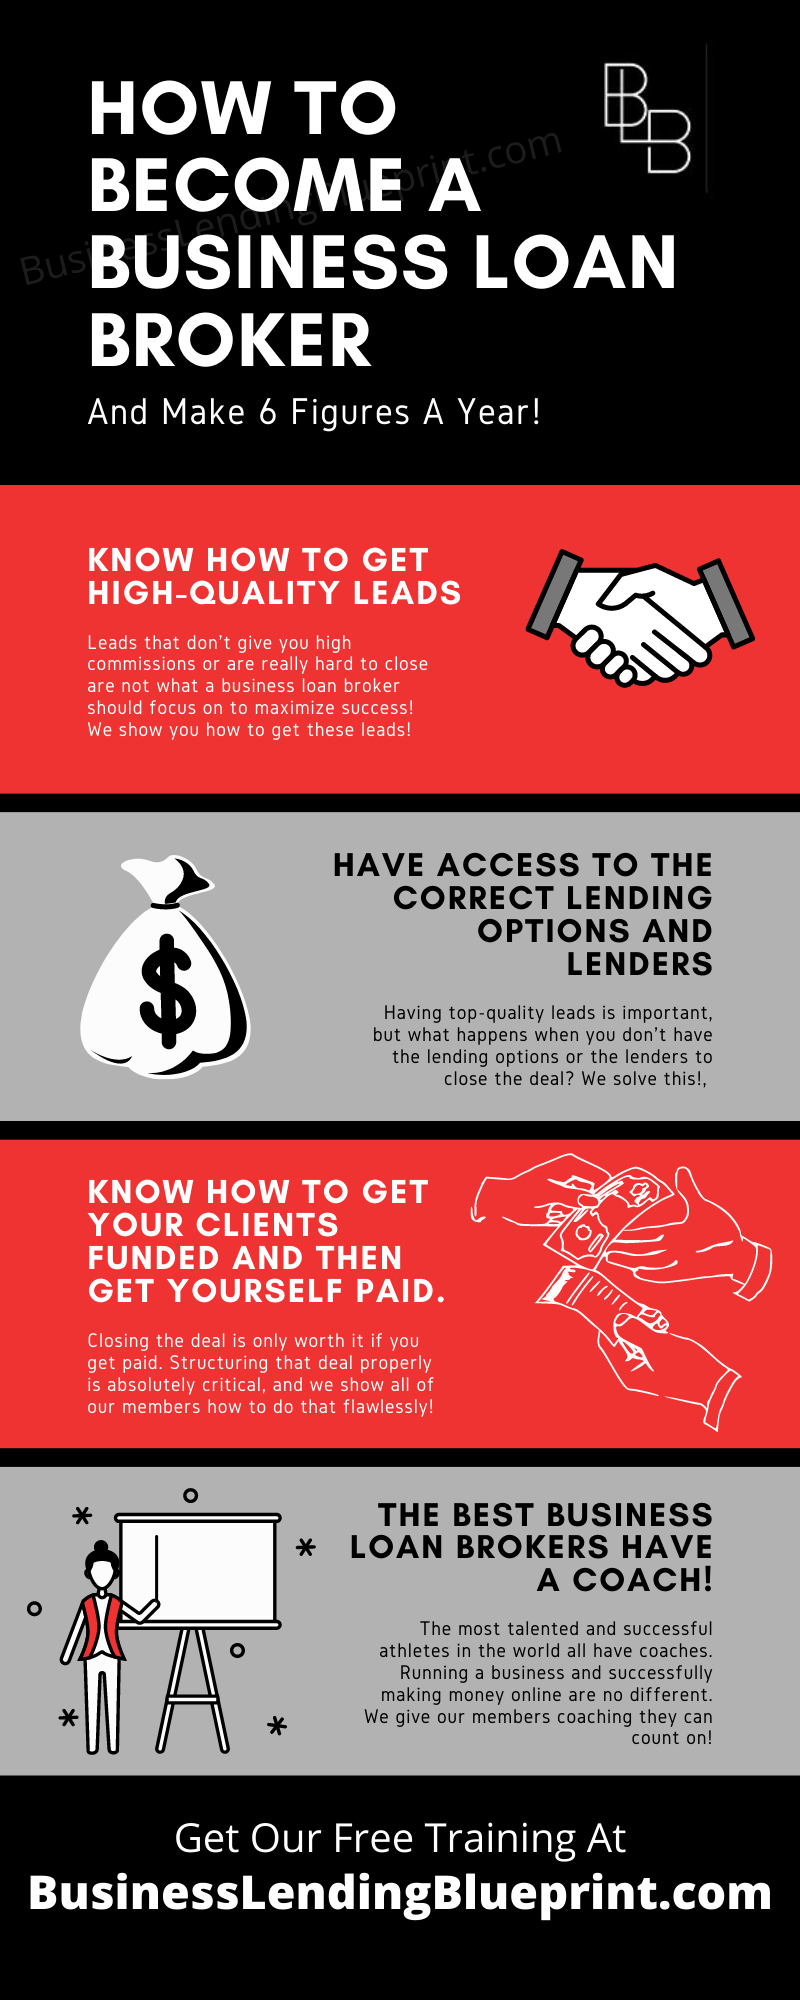 How to become a business loan broker infographic